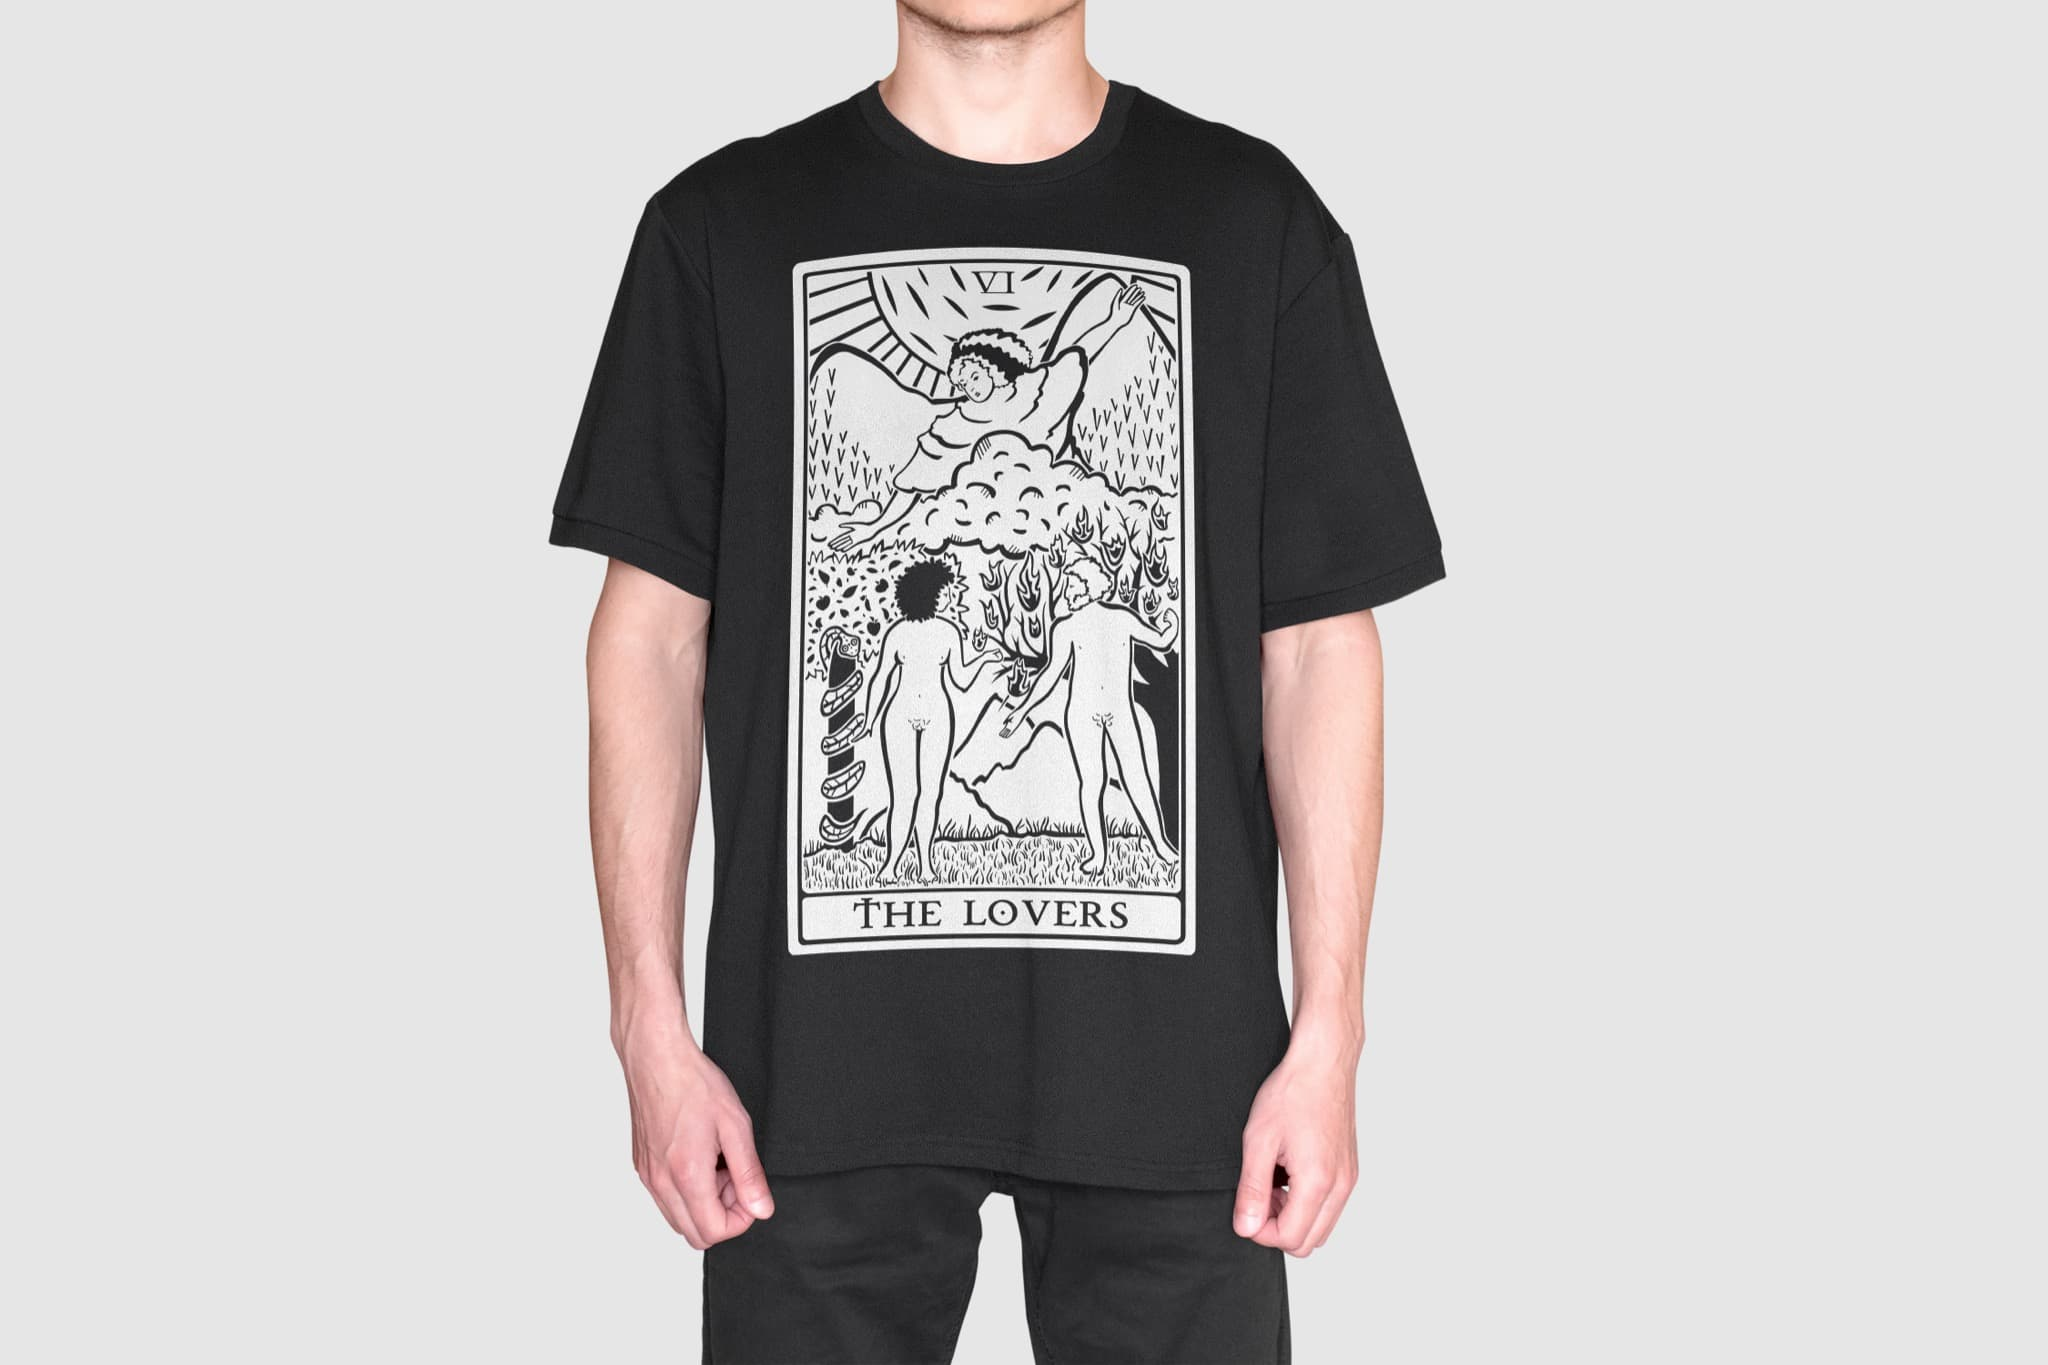 The Lovers - Tarot Shirt